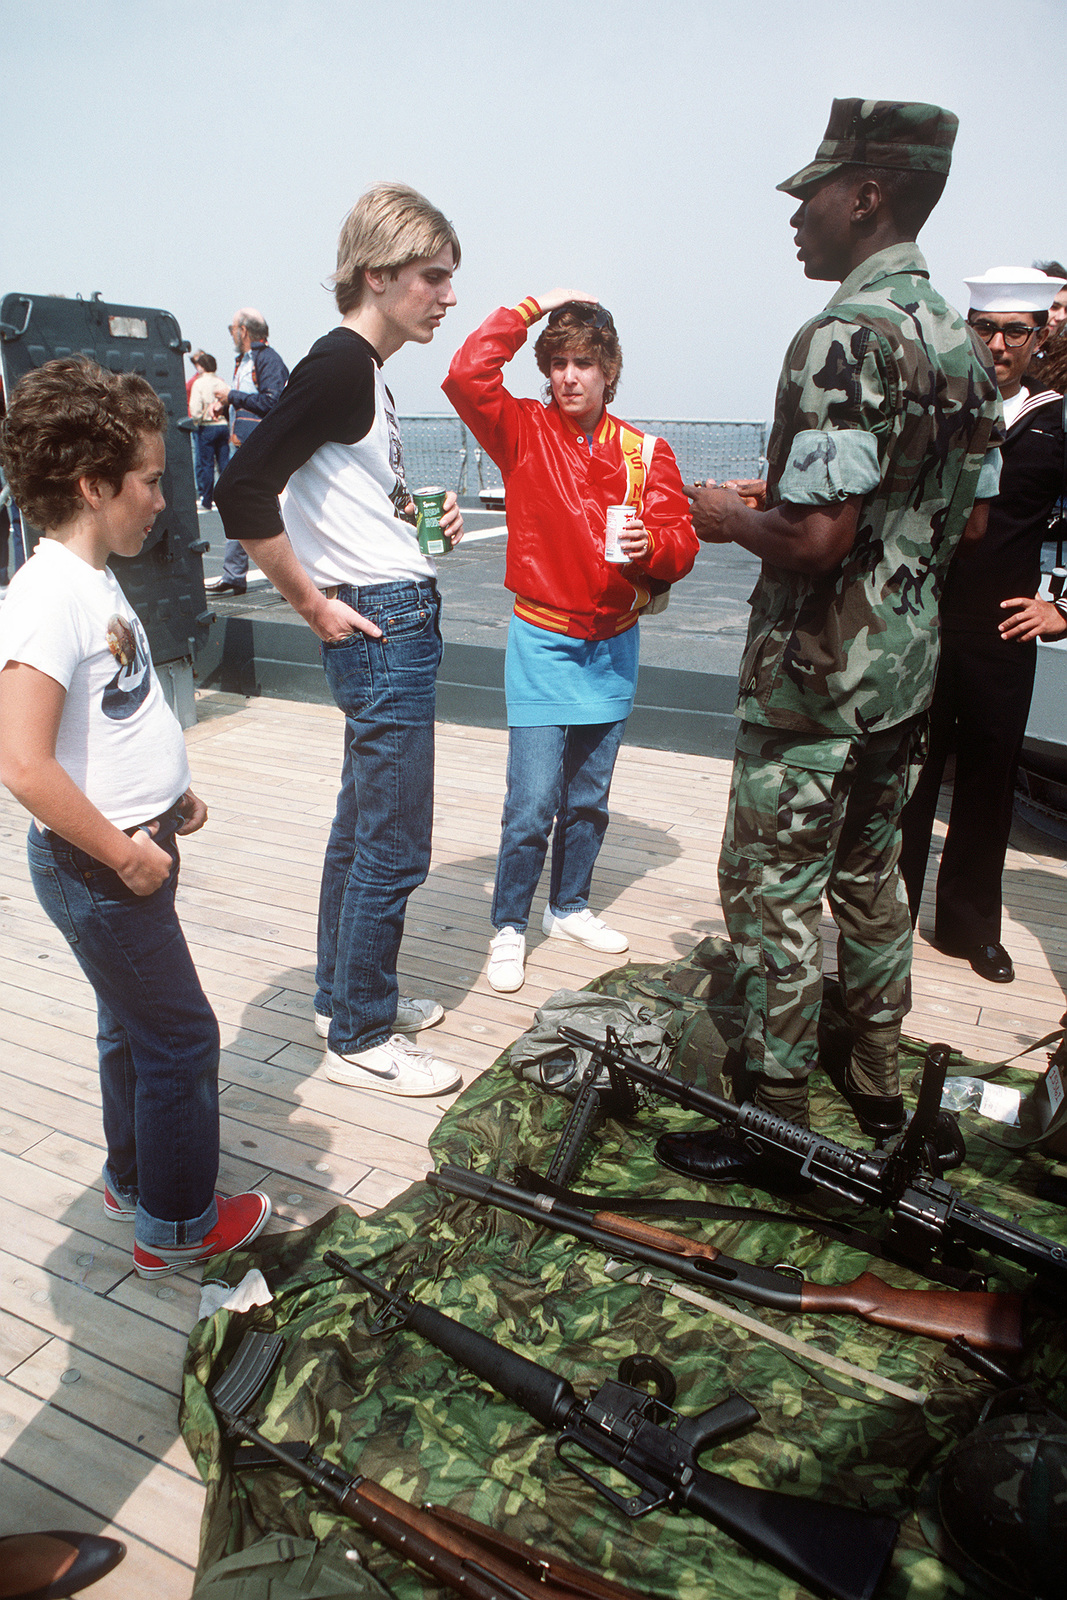 Dependents talk to a Marine aboard the battleship USS IOWA (BB 61) during a cruise from Naval Weapons Station, Yorktown, Virginia, to Naval Base, Norfolk, Virginia. Weapons visible on the deck are M14 and M16A1 rifles, foreground, a 12-gauge shotgun and an M60 machine gun